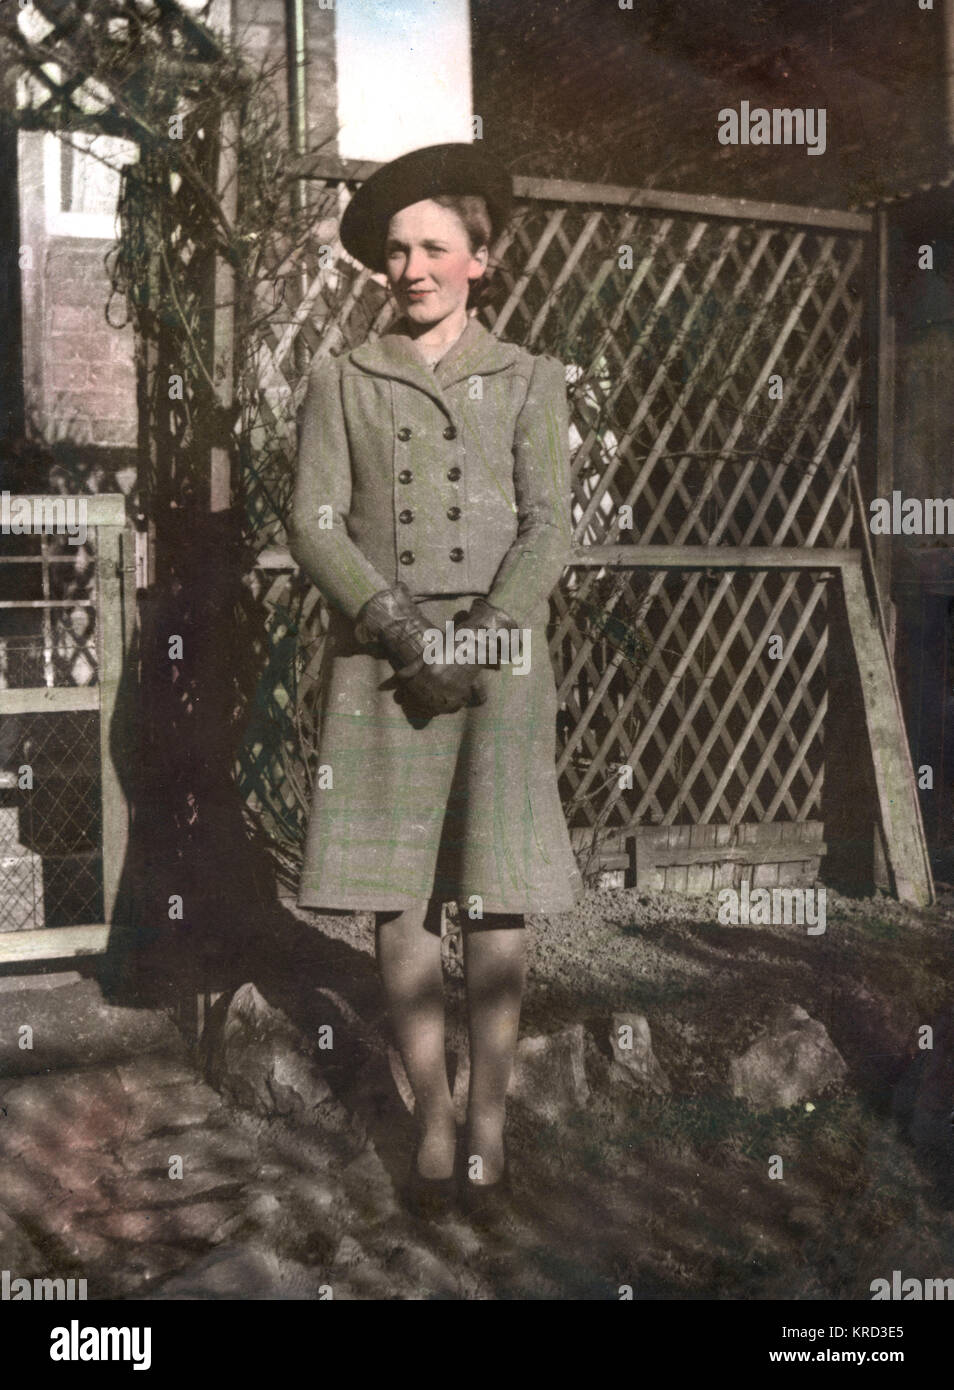 A woman, Dorothy Margaret Hunt (born 1924), poses by a trellis and arch in a garden wearing a typical 1940s skirt - Stock Image